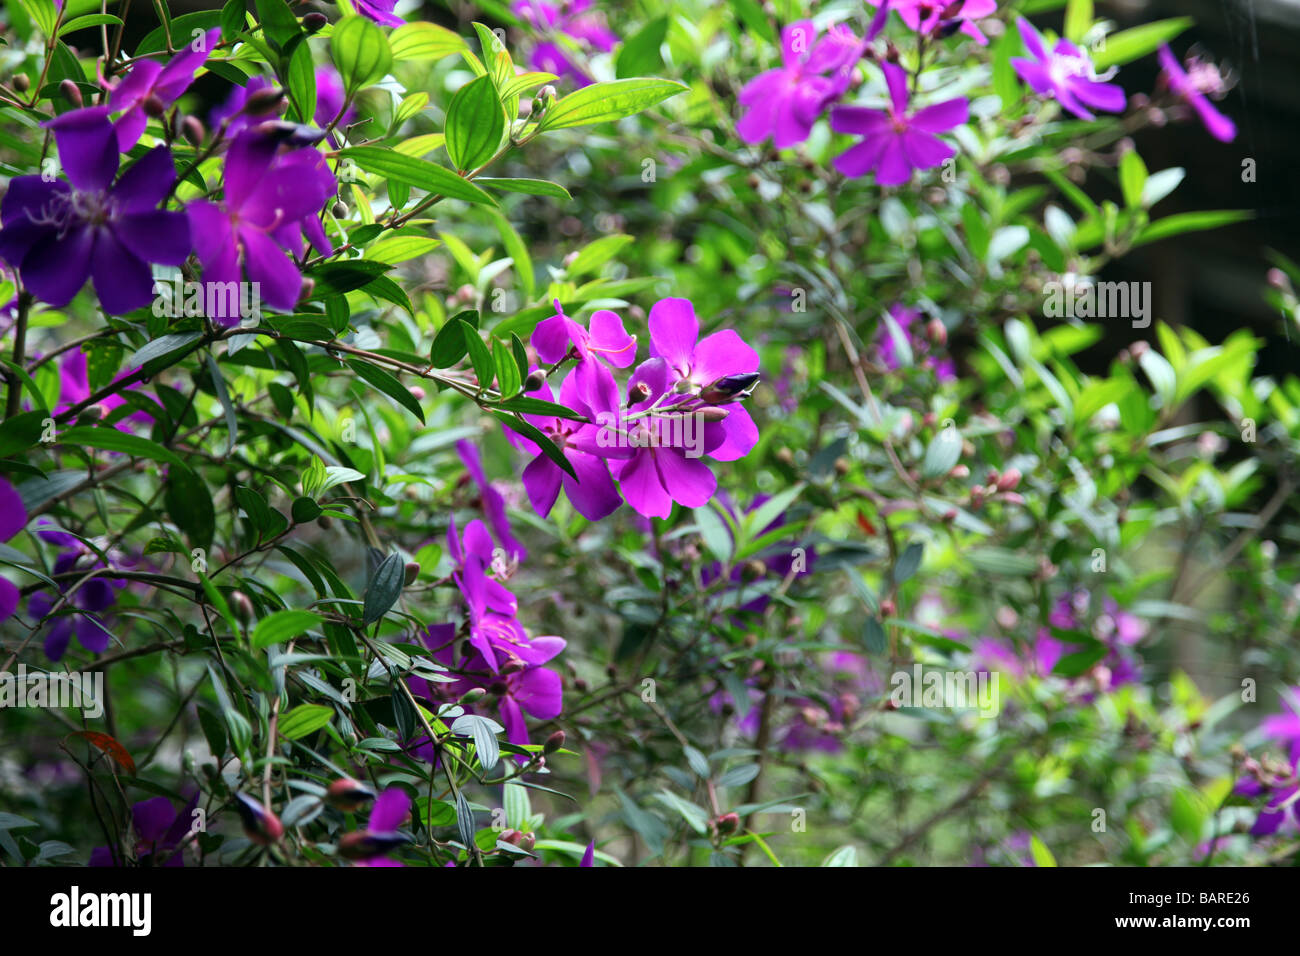 Beautifull Nature Flower Bush Bushes Flowers Pink Red Violet Purple